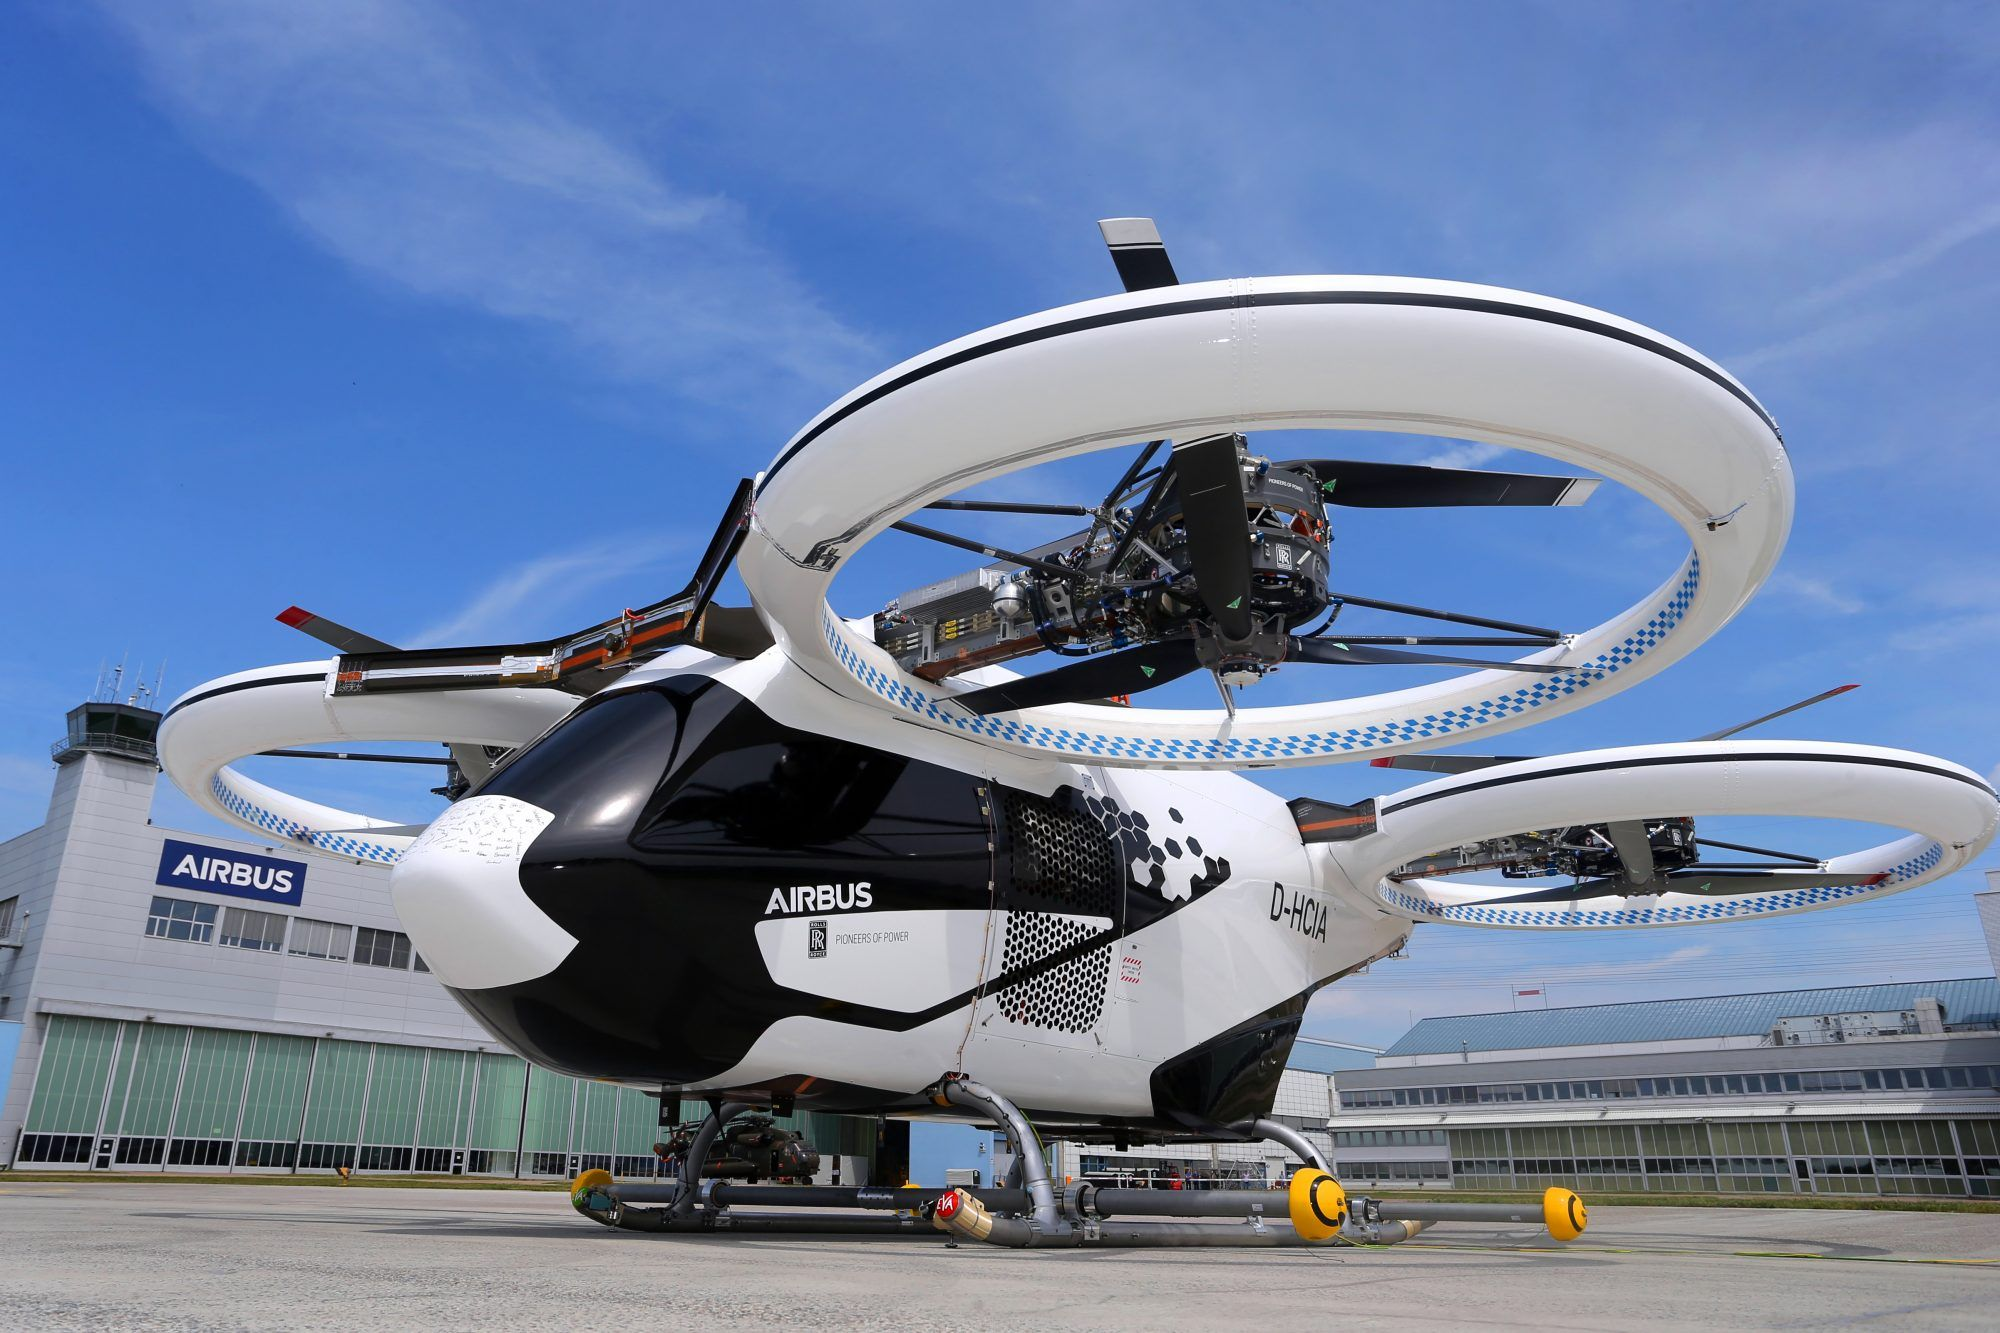 Airbus' 'Flying Taxi' Could Change How We Travel in Cities